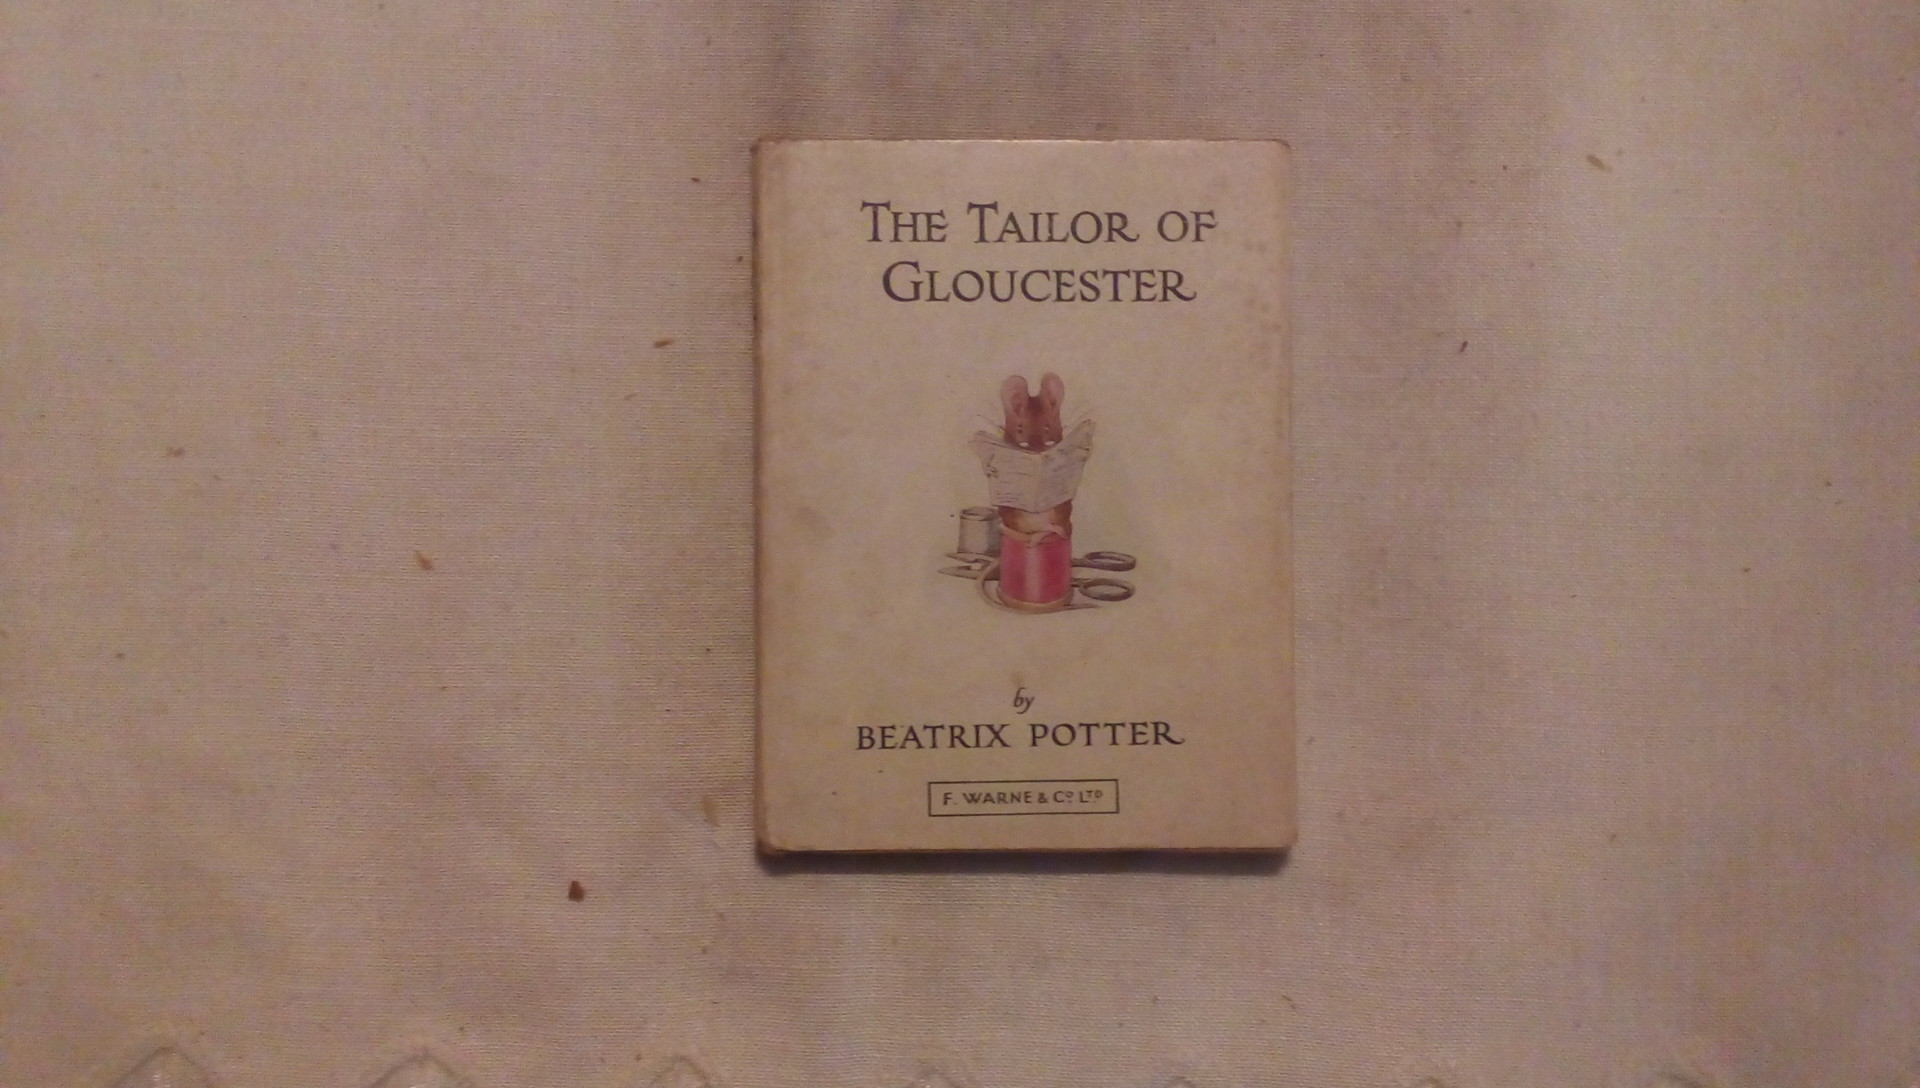 The tailor of glouchester - Beatrix Potter - F. Warne & C.